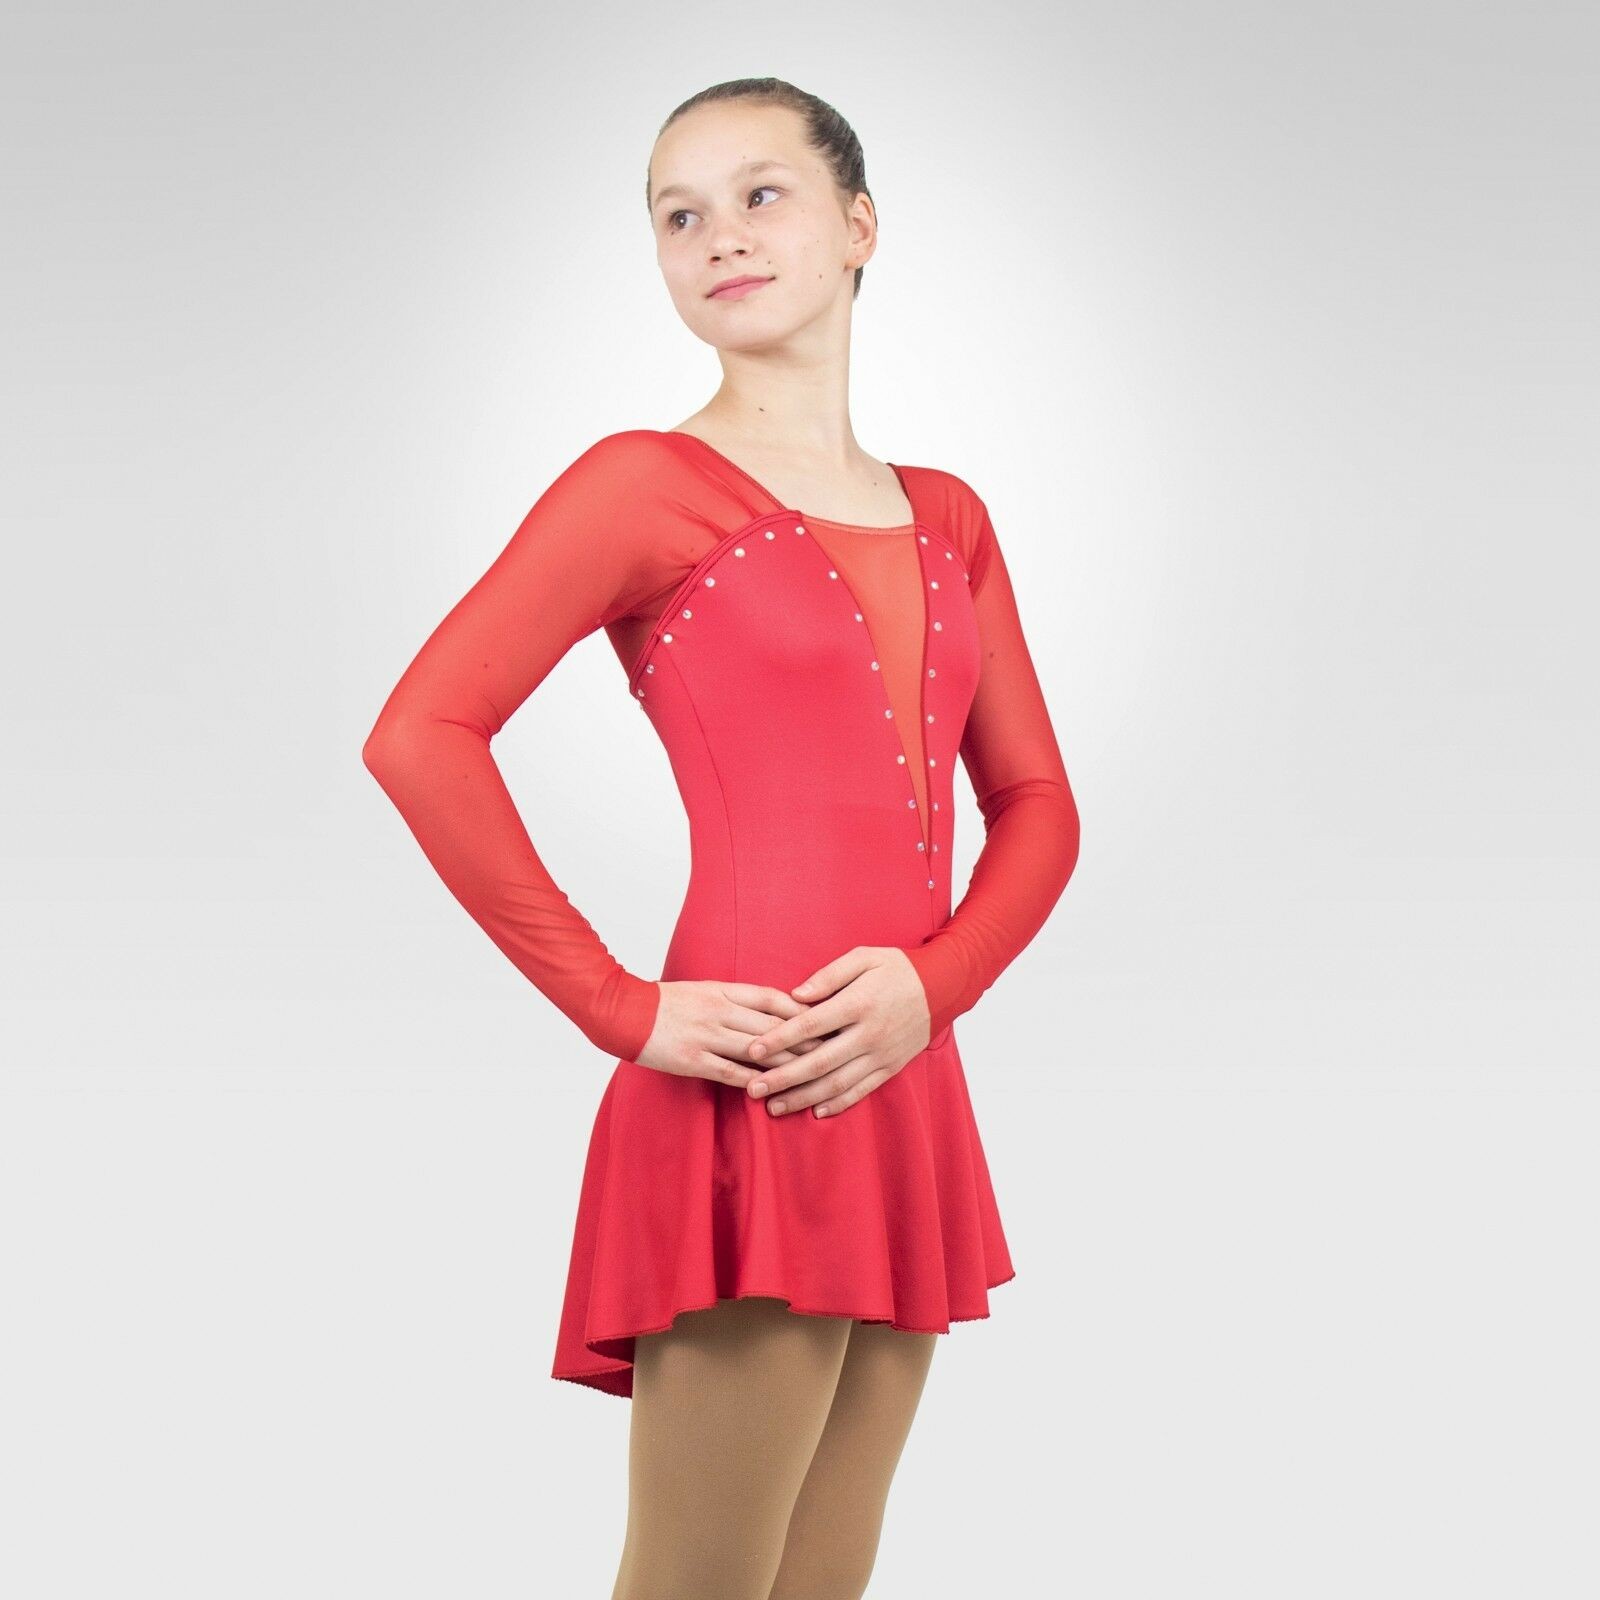 Ice Skating Figure Skating Red Dress size XSMALL adult